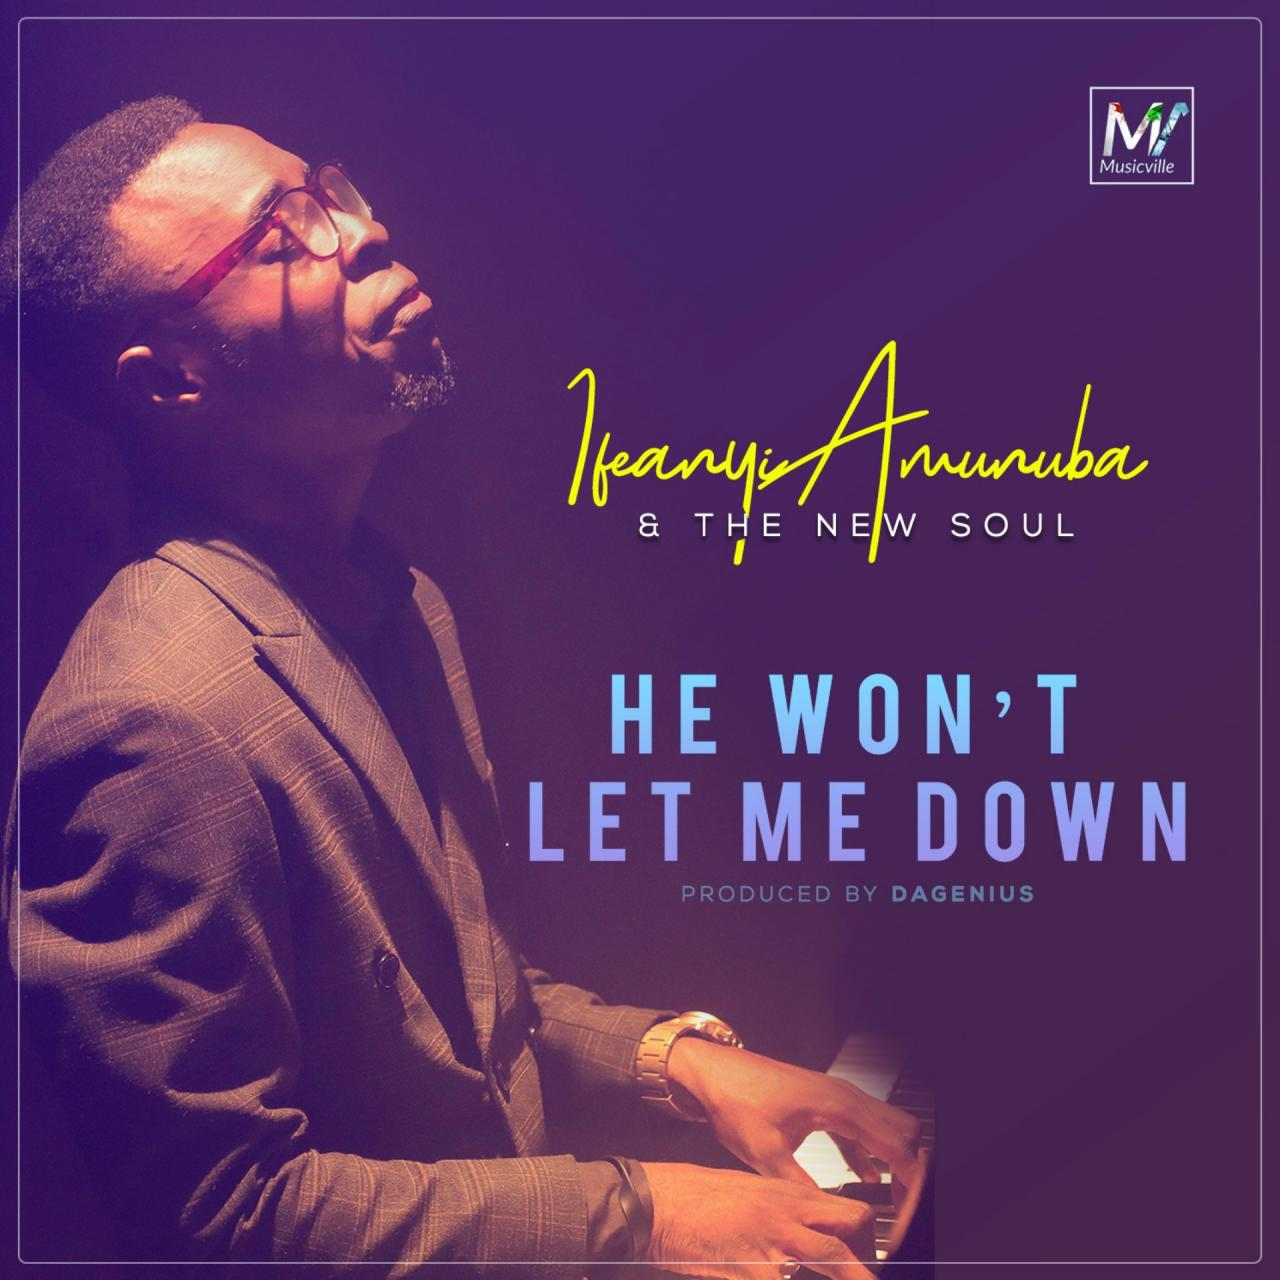 AUDIO & VIDEO: Ifeanyi Amunuba & The New Soul – He Won't Let Me Down